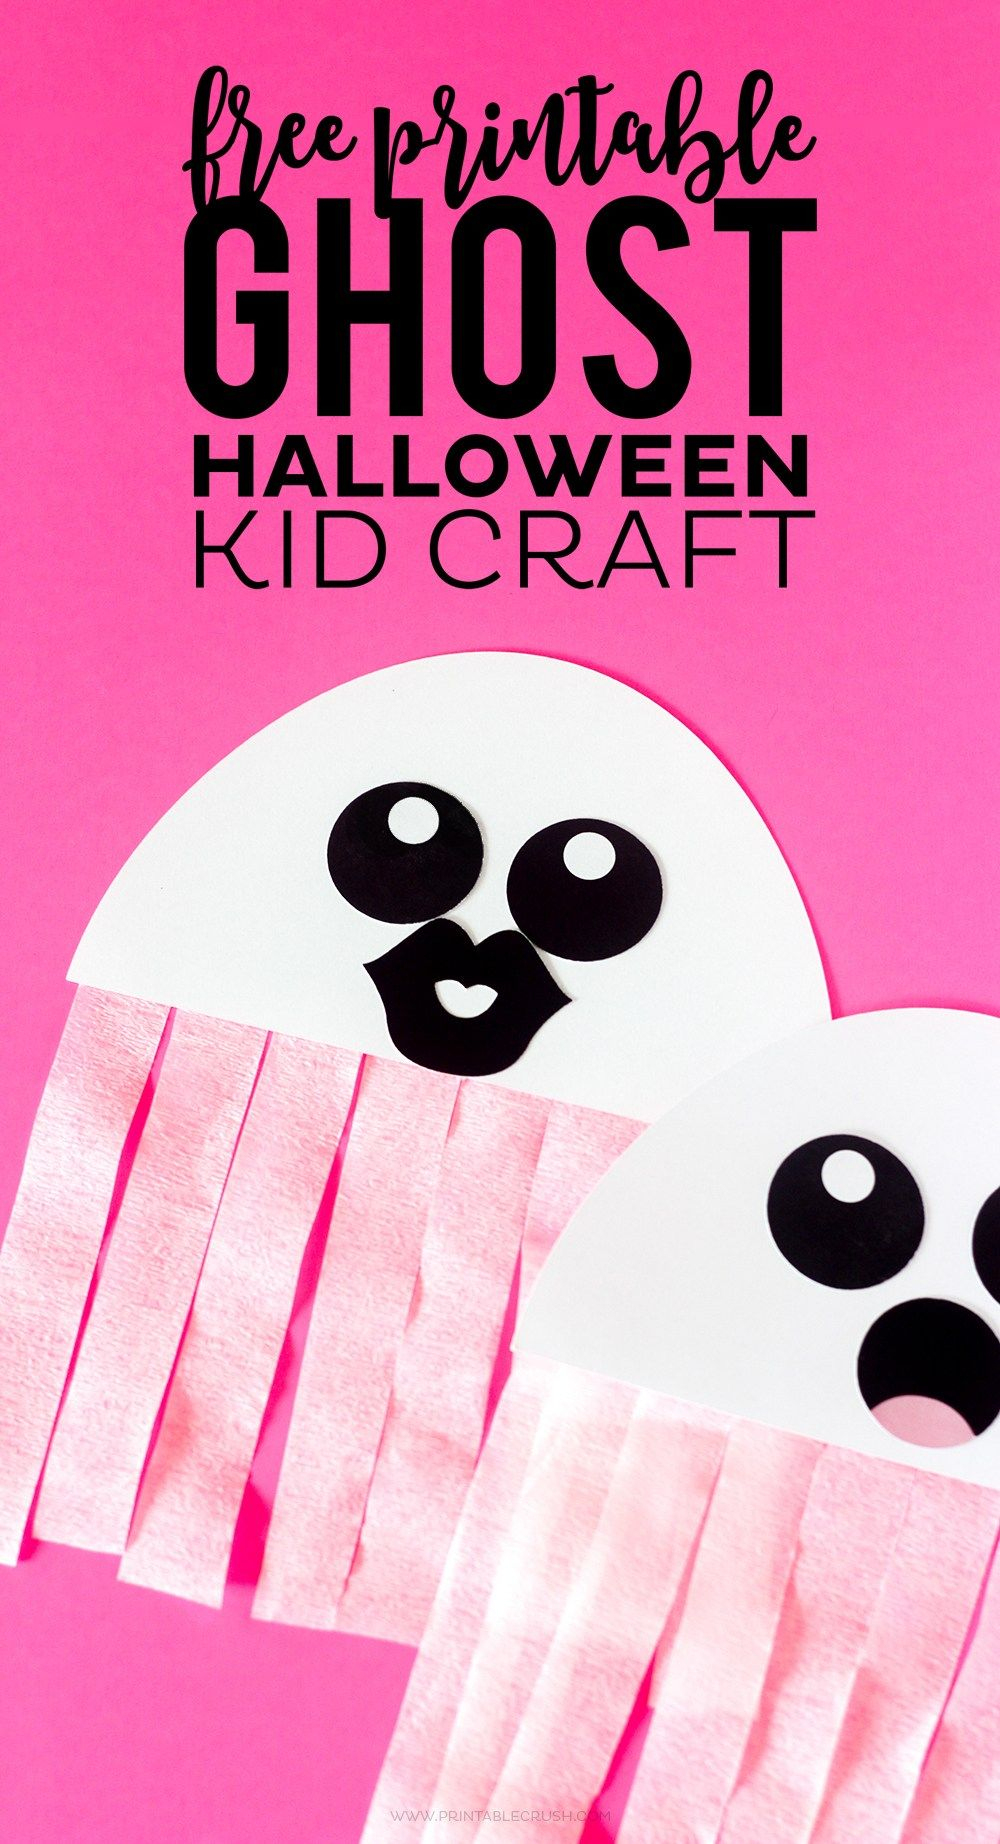 This Free Printable Ghost Halloween Craft Would Be A Great Activity - Halloween Crafts For Kids Free Printable